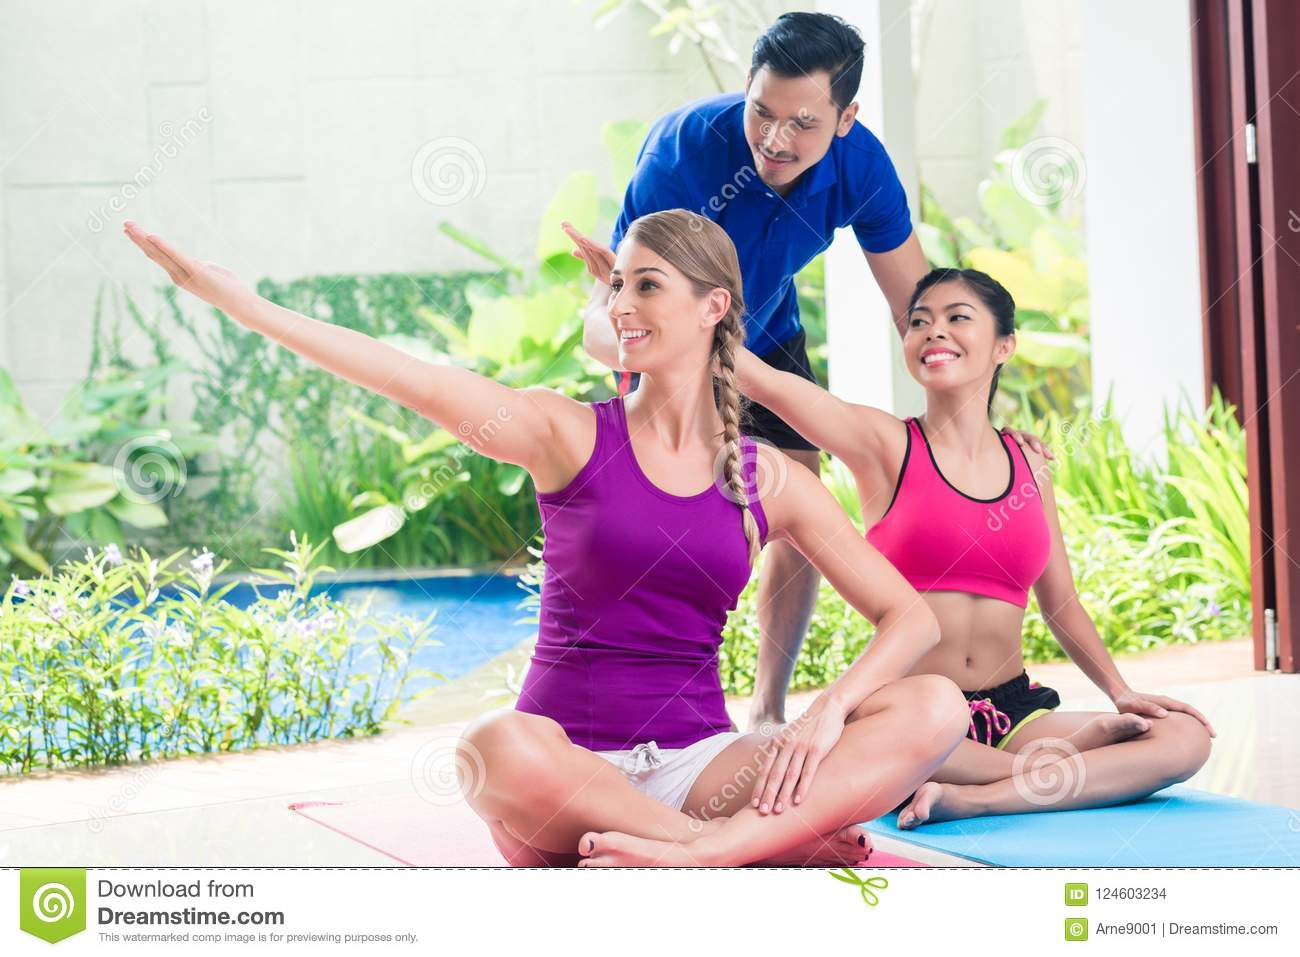 Women and personal trainer at fitness exercise